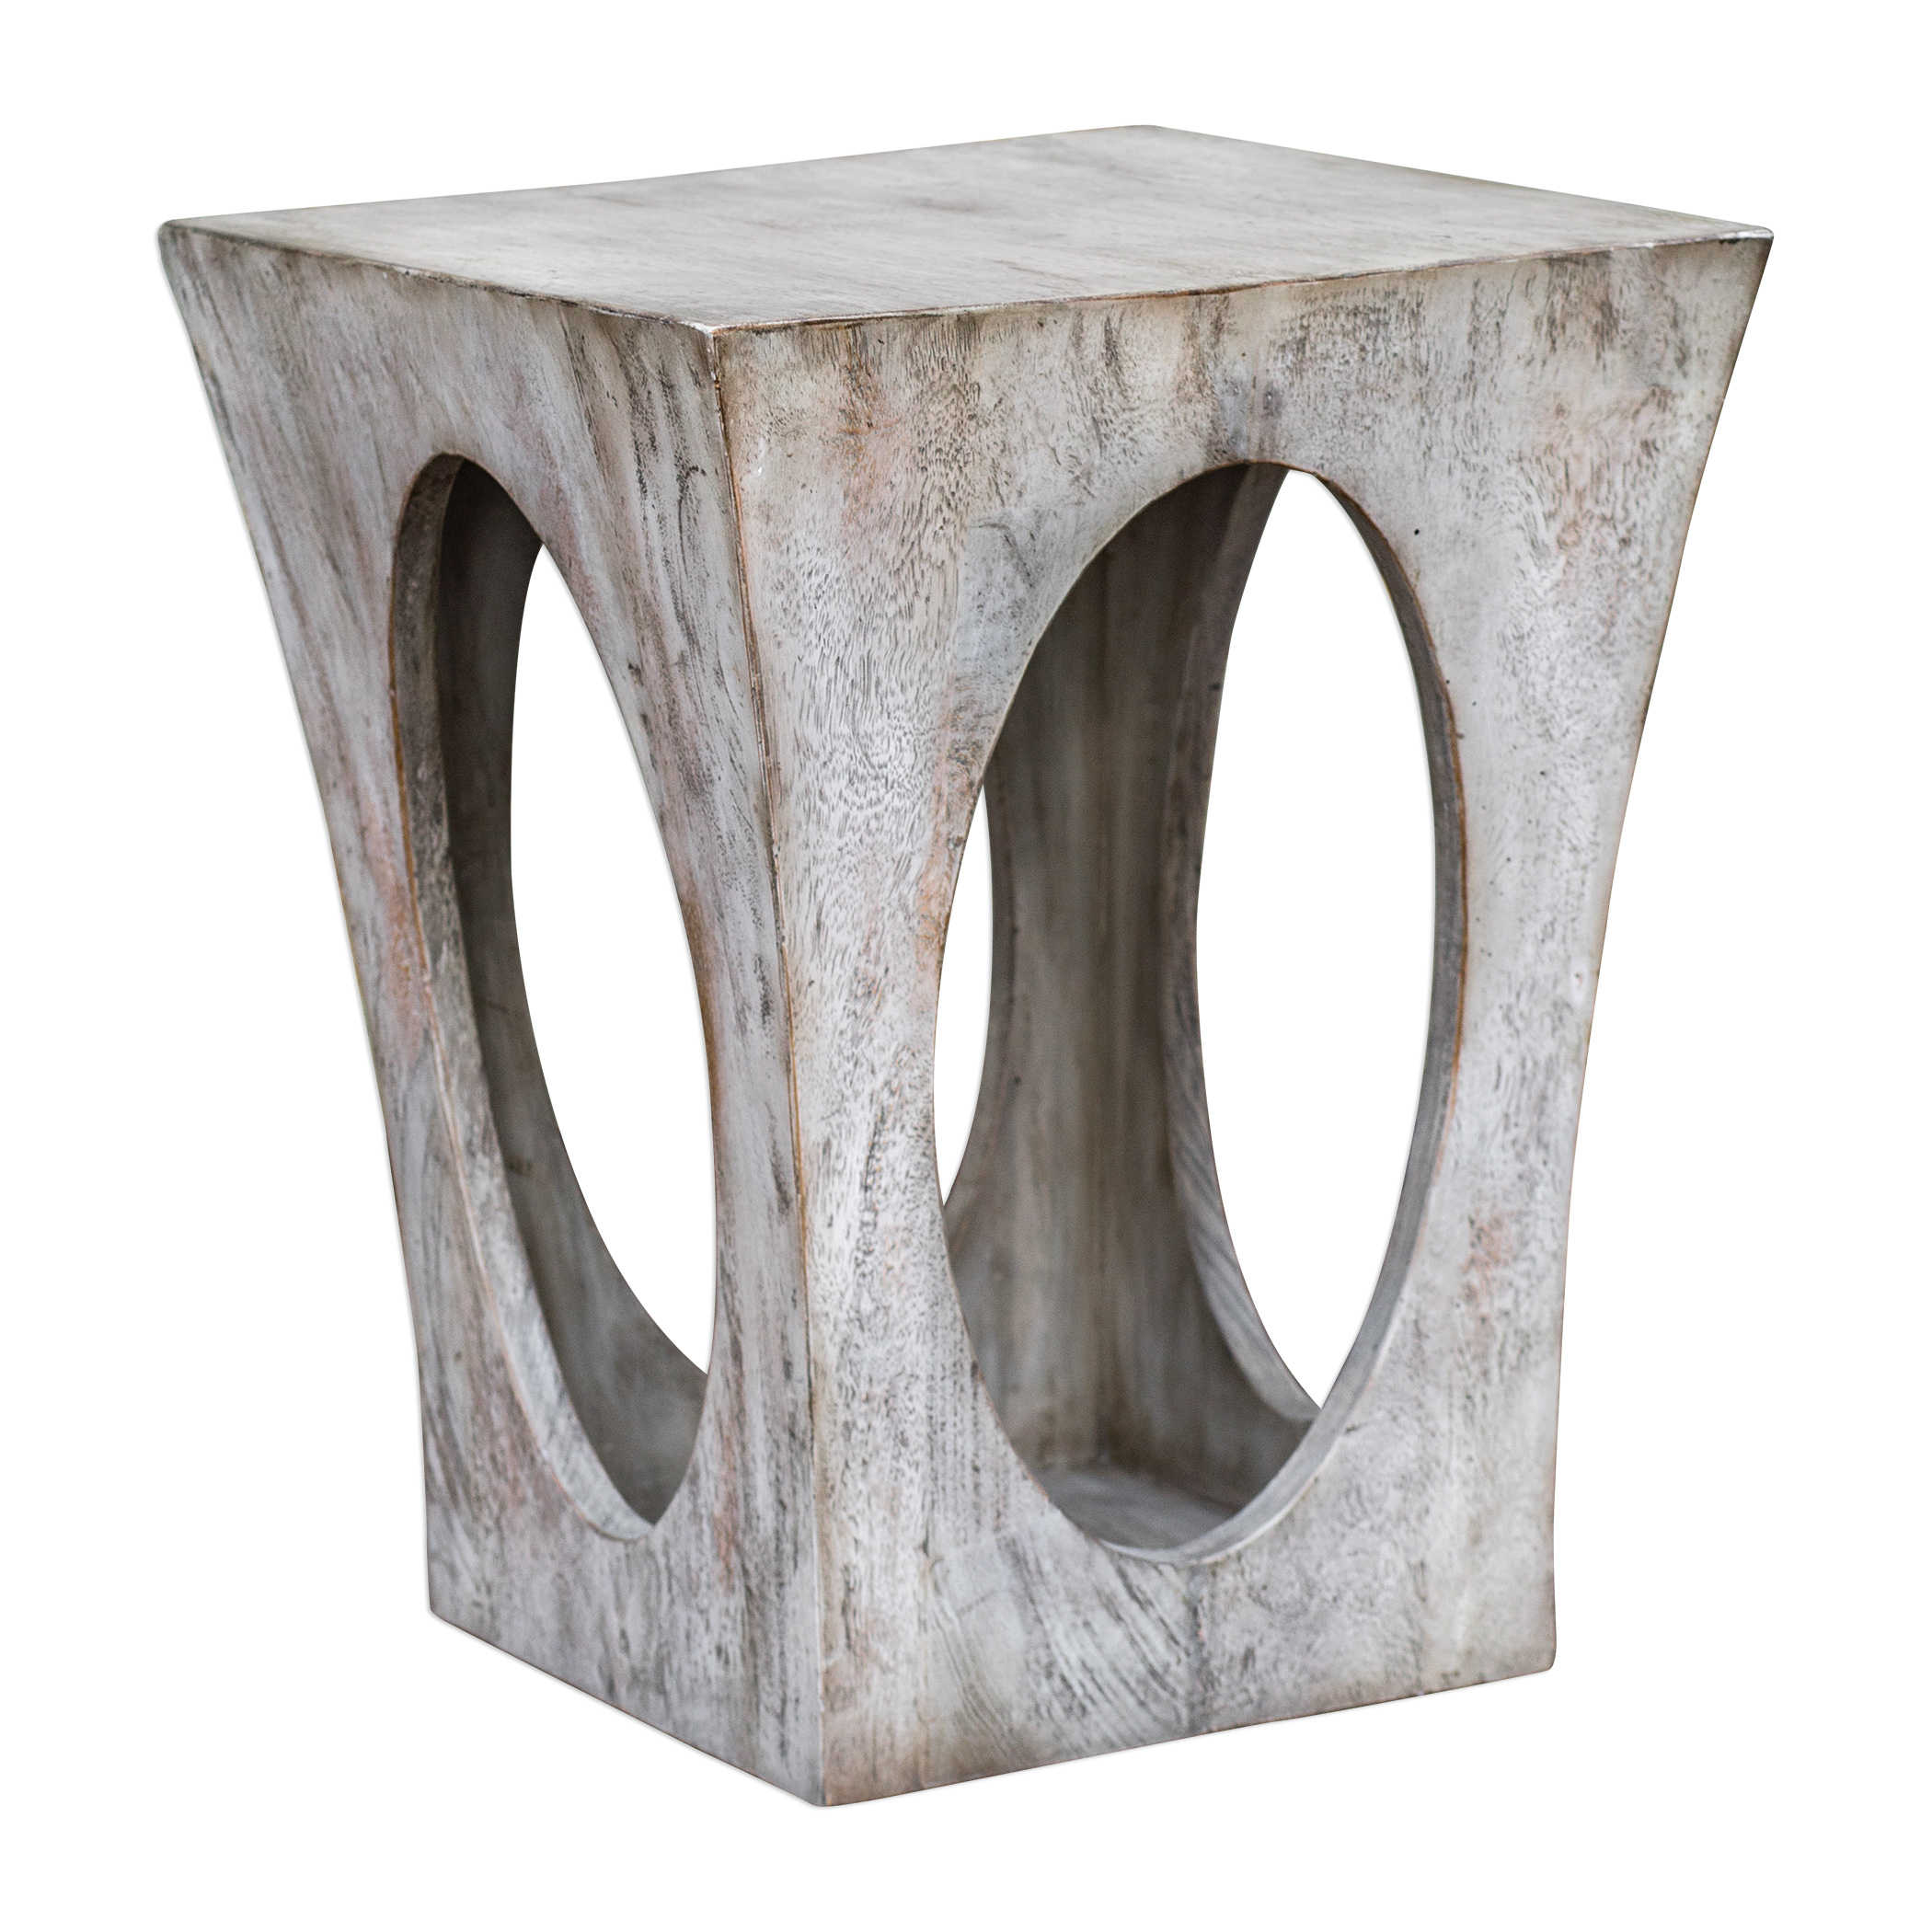 uttermost vernen aged white accent table wood placemats for round metal unusual tables modern sideboard side with umbrella hole barn doors house gold ikea cream linen tablecloth